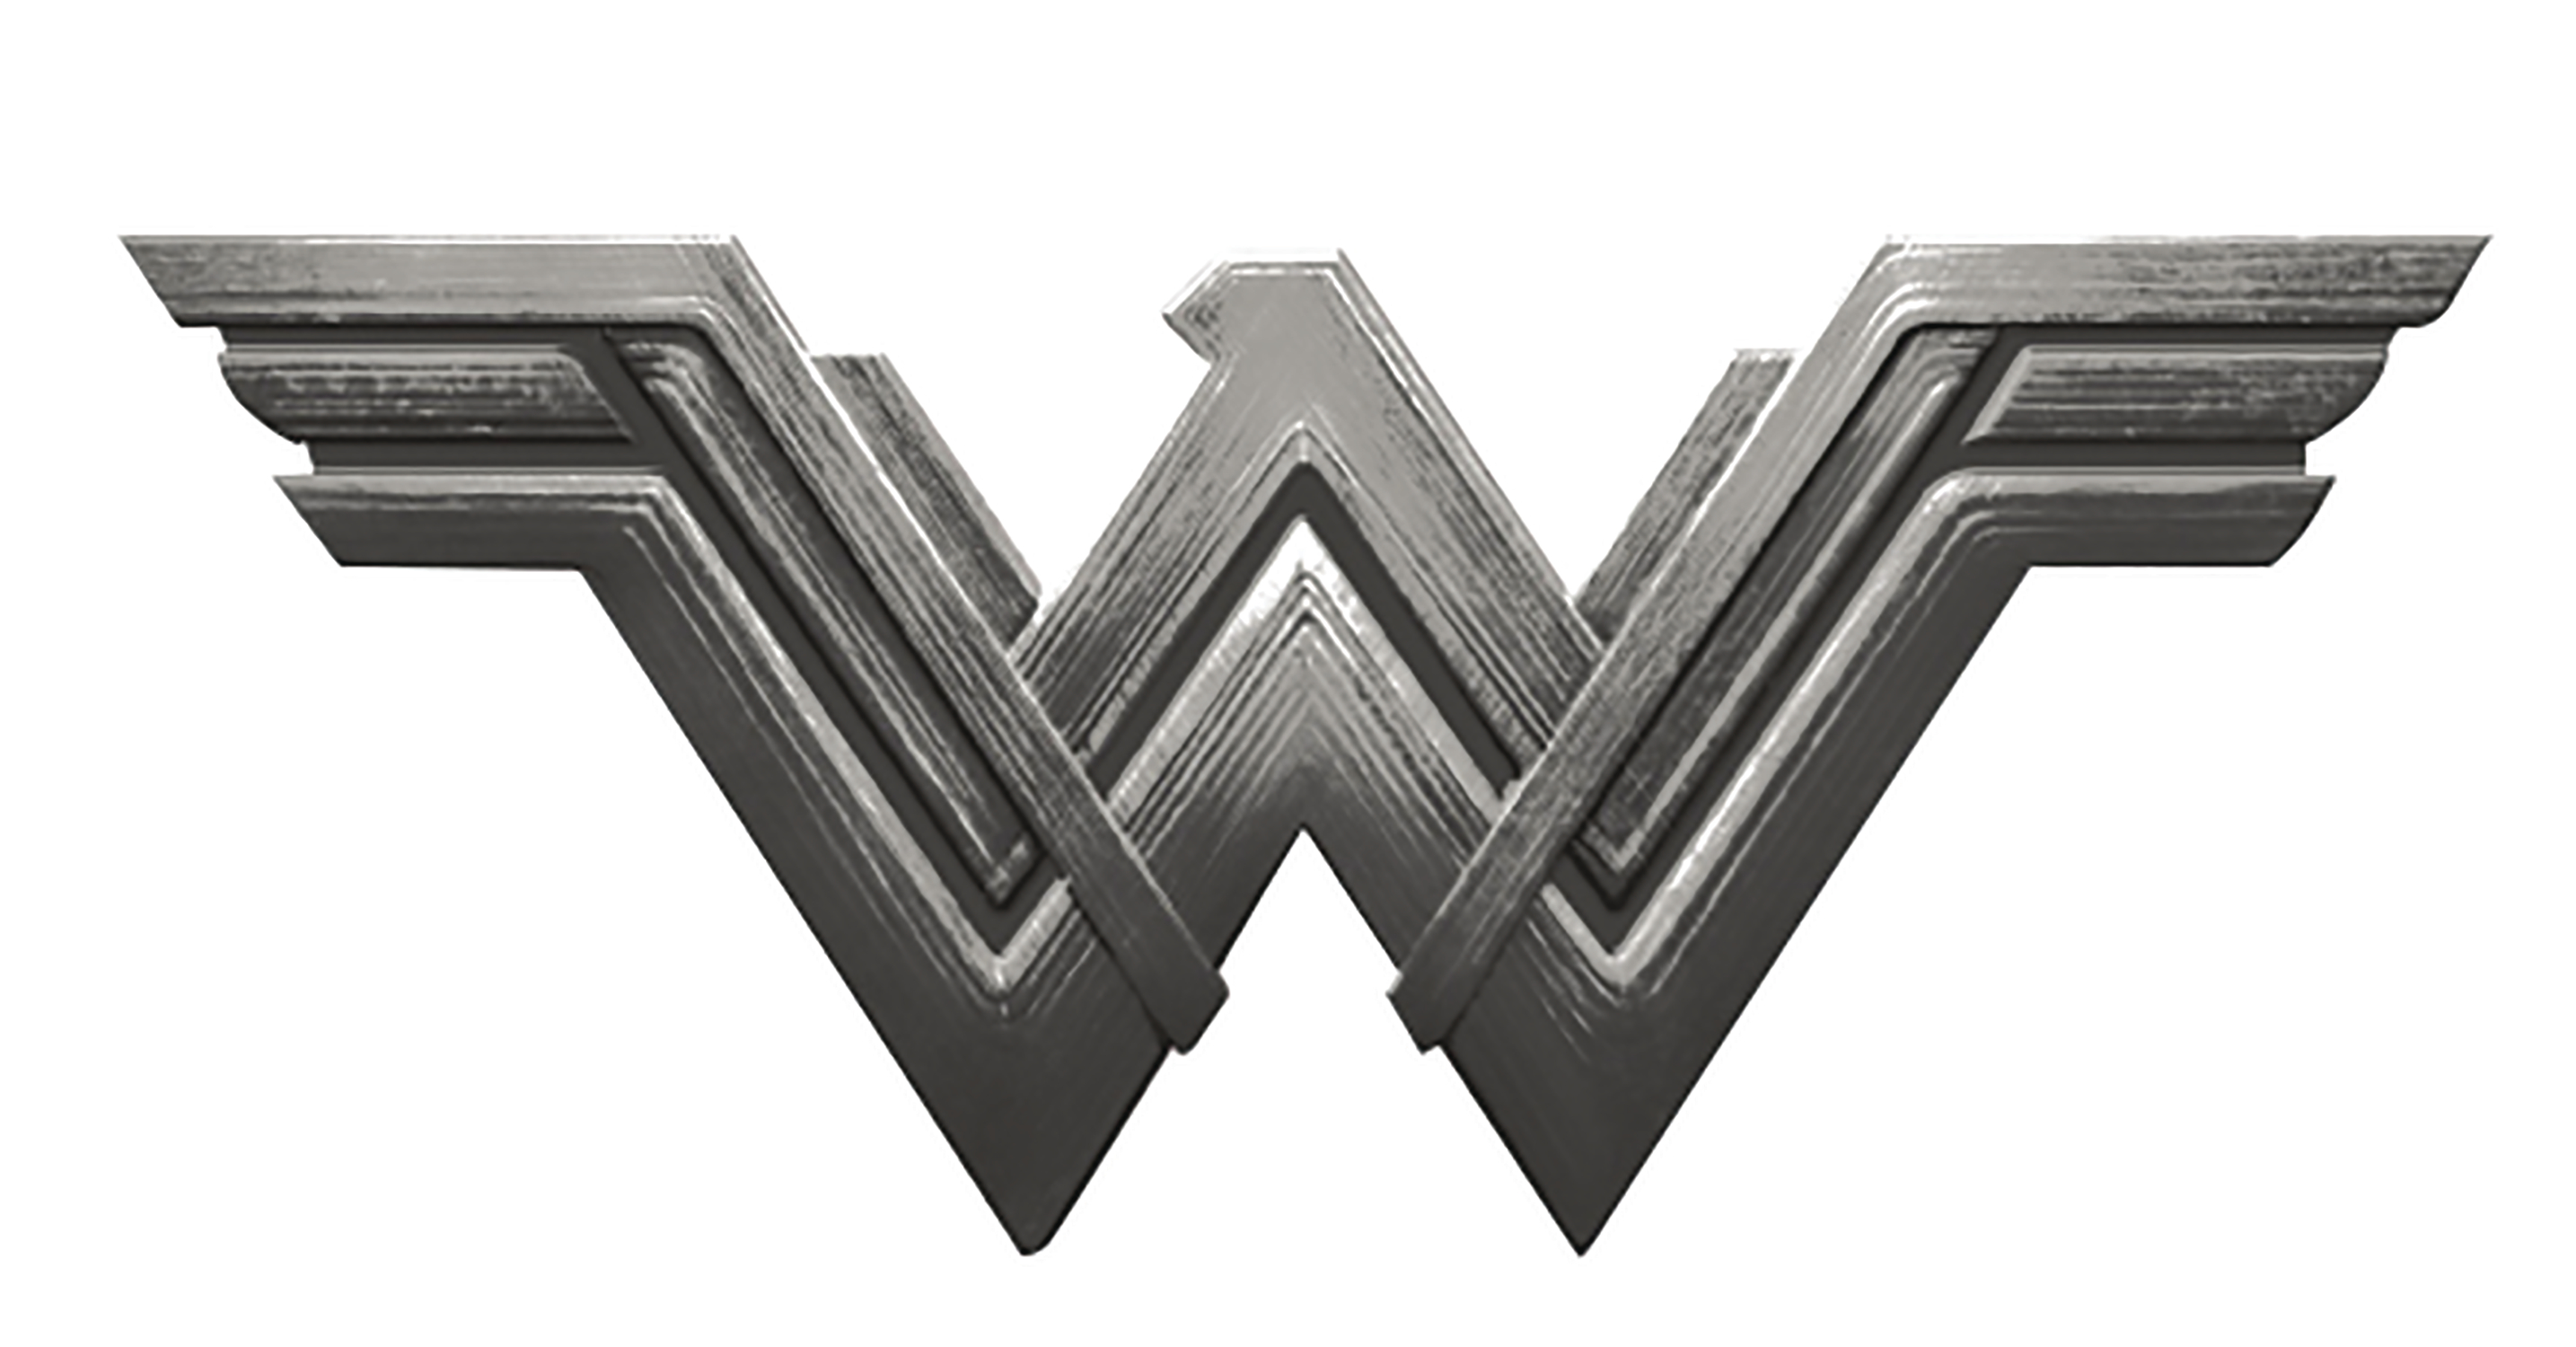 Apr178684 wonder woman movie logo deluxe pewter lapel pin wonder woman movie logo deluxe pewter lapel pin biocorpaavc Images